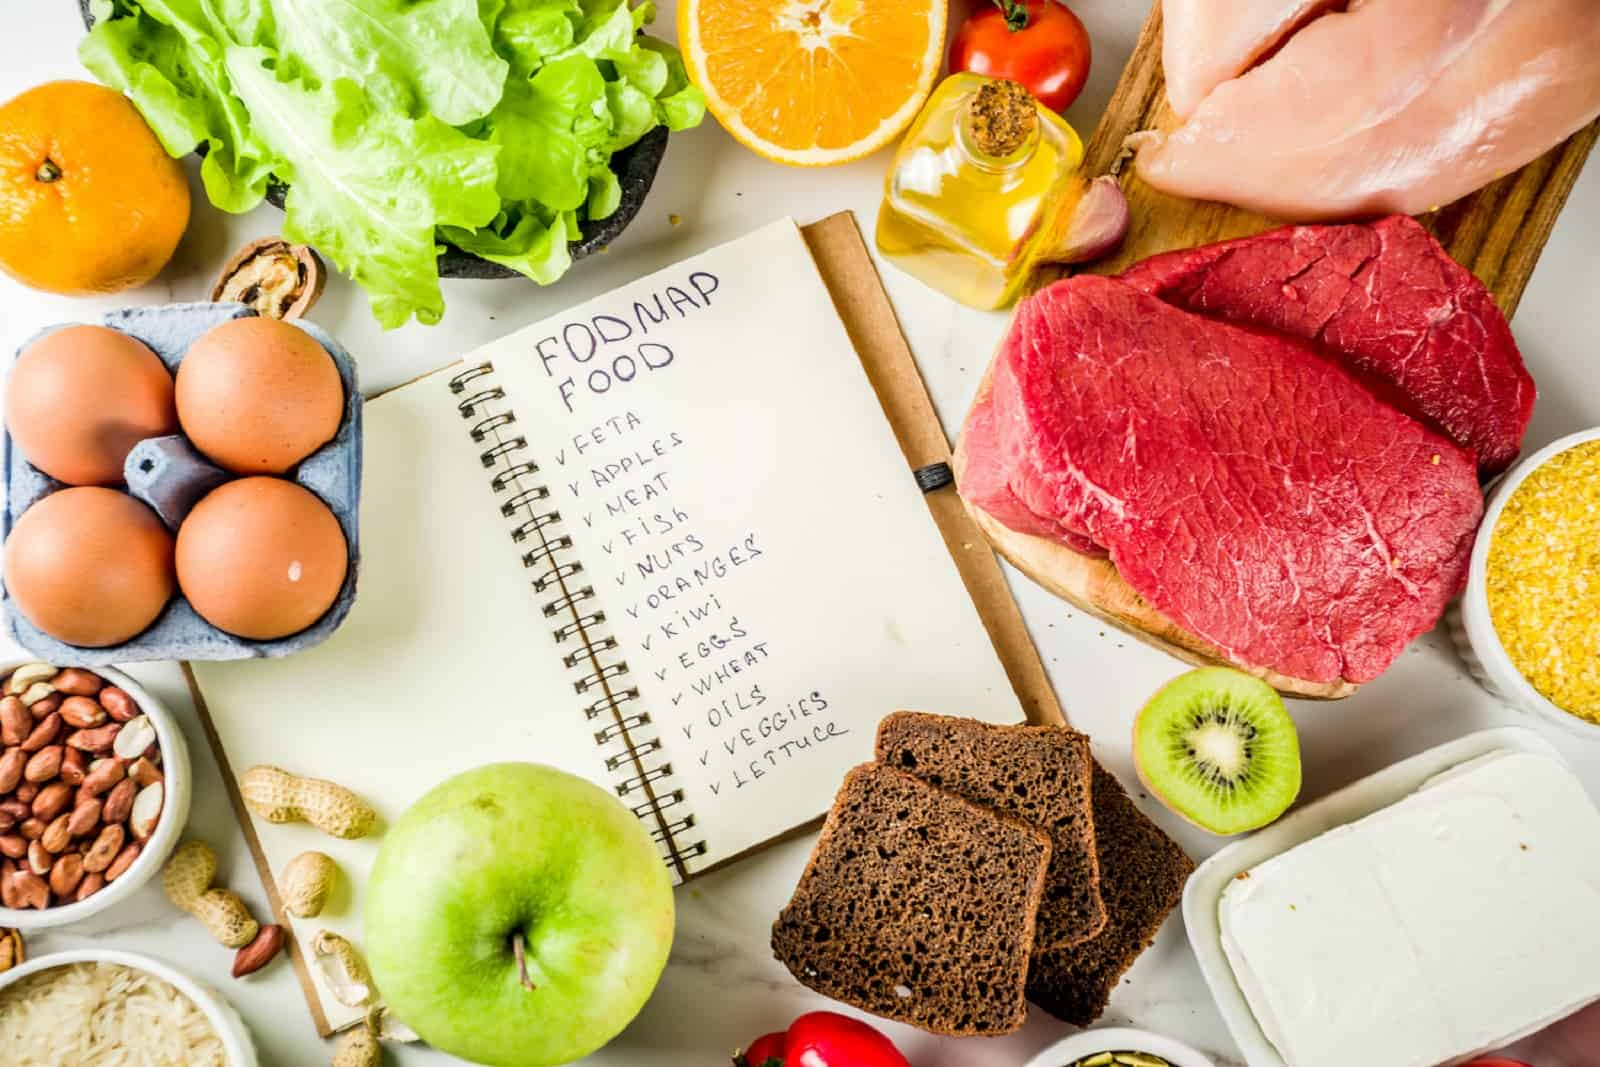 fodmap food written on a notebook,  placed on top of a marble counter with various meat, vegetables, fruits and grains